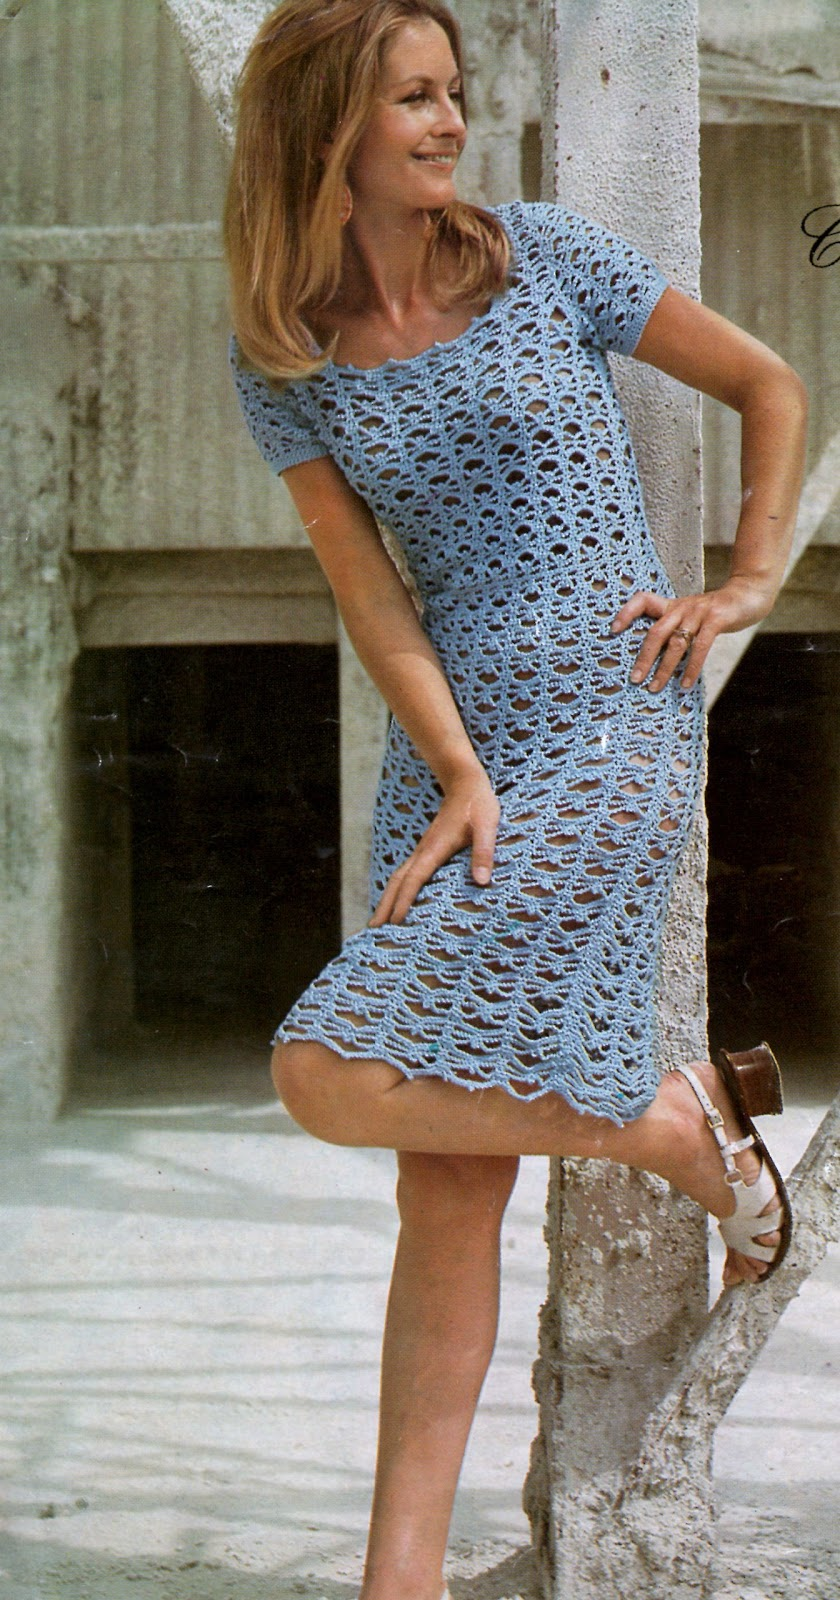 Modern Vintage Dress Patterns